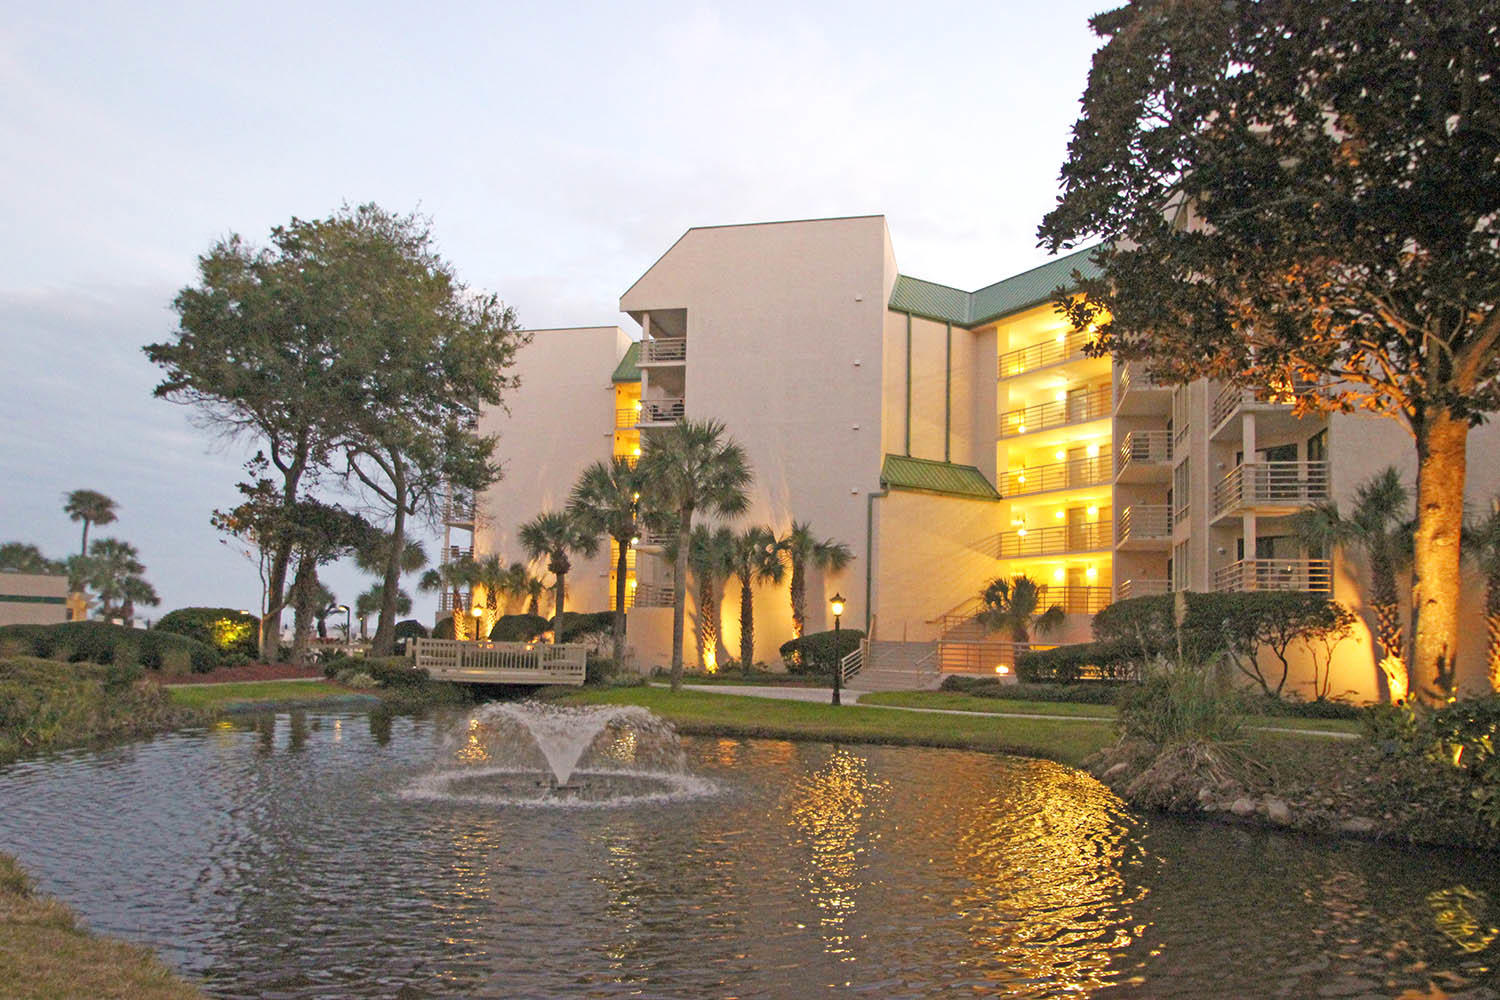 Building by lagoon at dusk